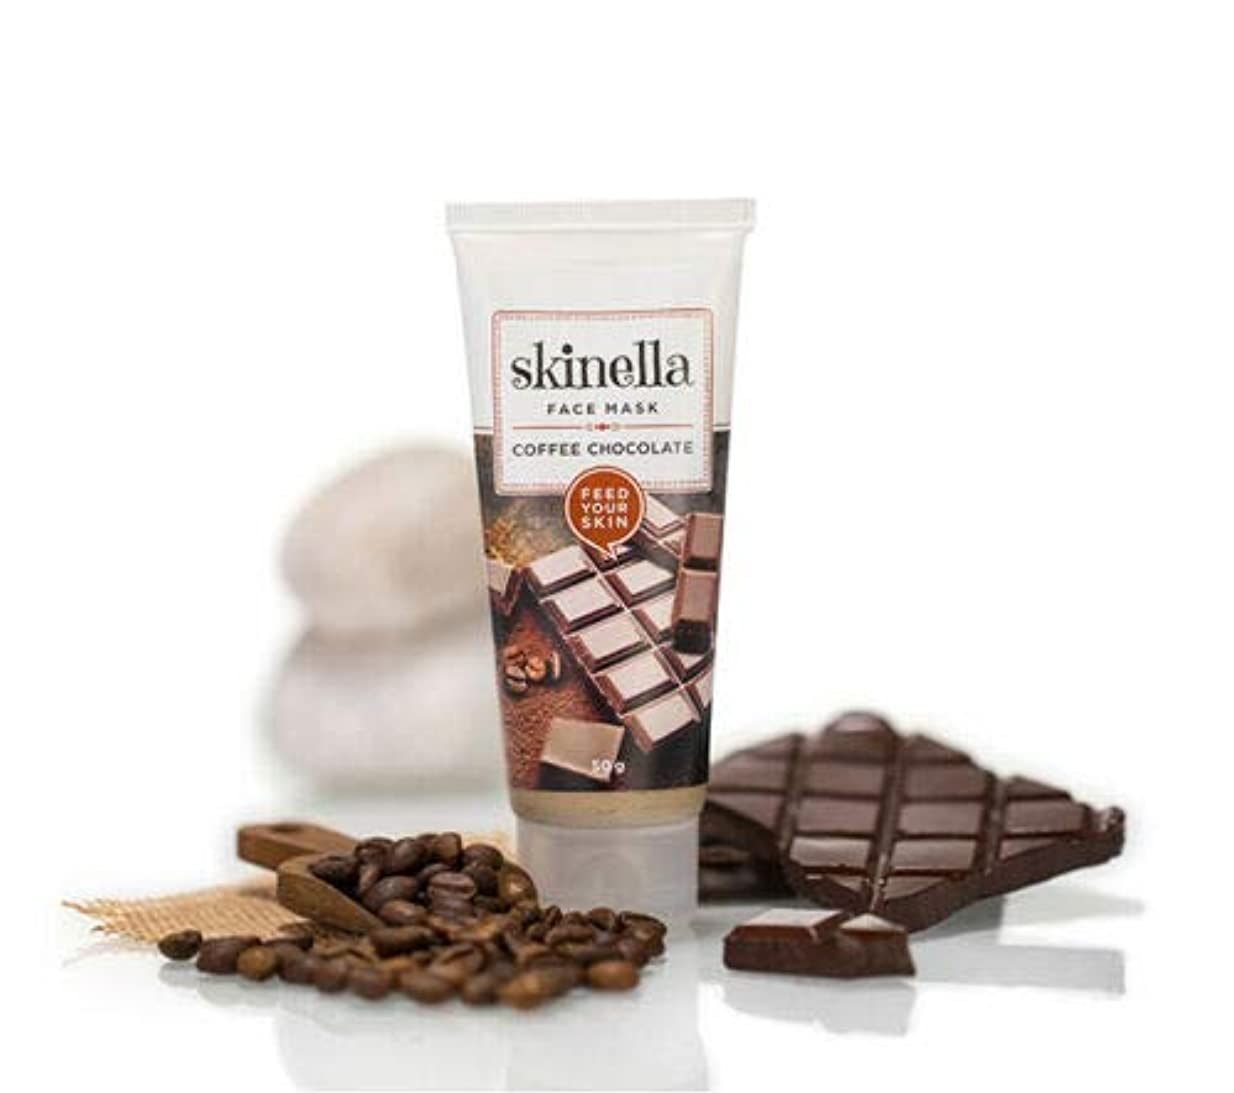 啓示お金けん引Skinella Coffee Chocolate Face Mask 50g for a hydrated and rejuvenated look Skinellaコーヒーチョコレートフェイスマスク50g